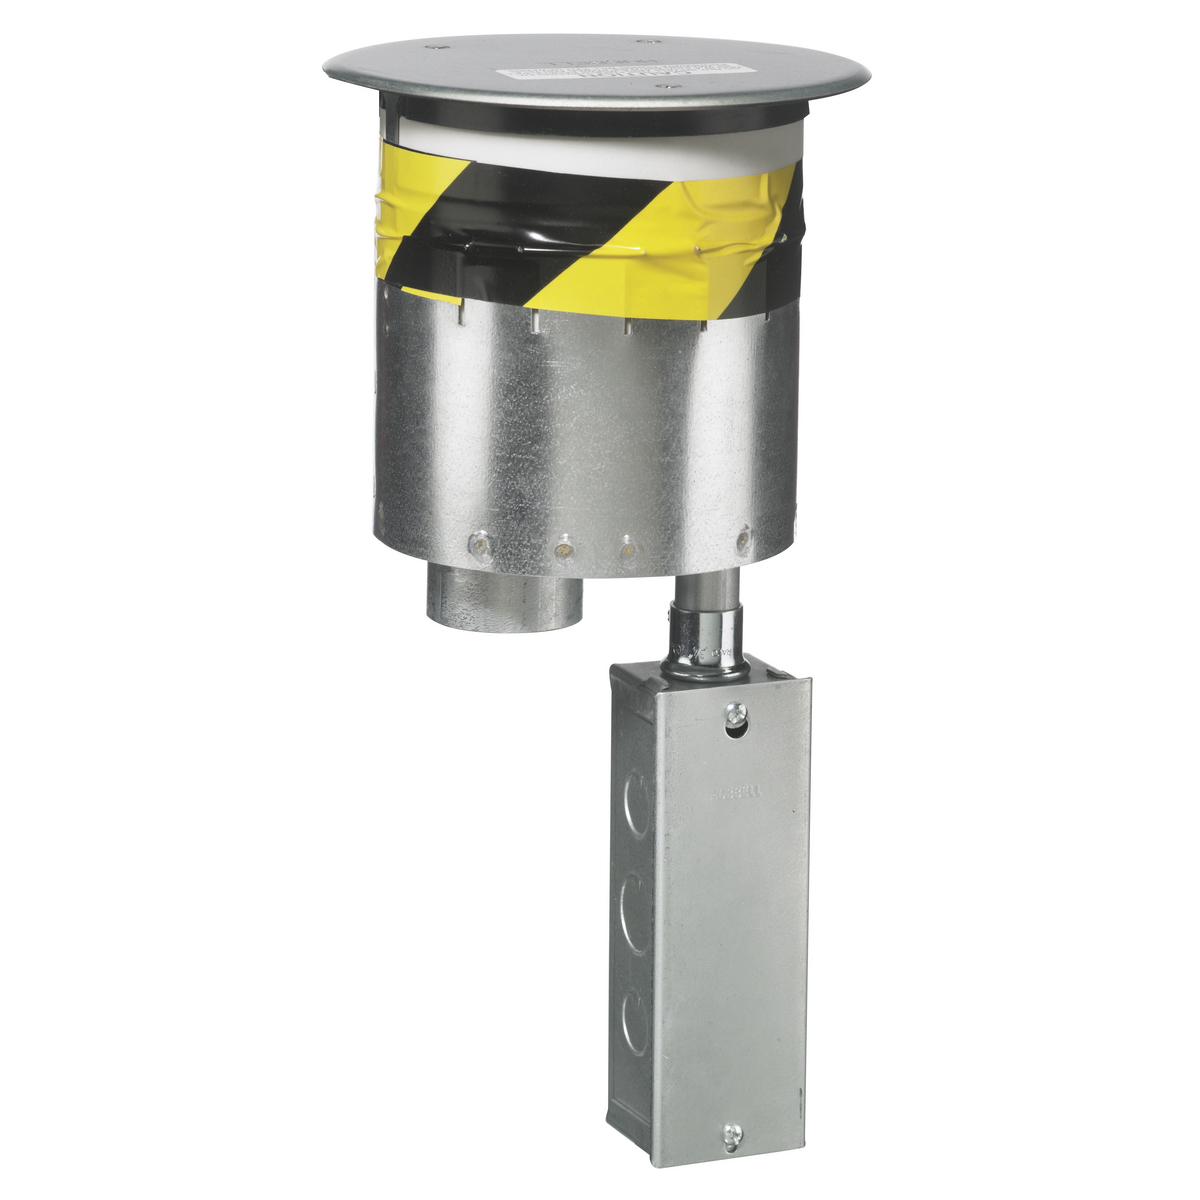 Wiring Device-Kellems ScrubShield™ SystemOne™ Poke-Through, Flush Recessed Standard Sized, 6 in Hole, 1000 lb Capacity, Fire Rated Device, 8.73 in Length, For Use With: In-Floor Delivery Systems and Concrete Floors, 7.53 in Dia x 0.06 in H Cover, Die Cast Aluminum Cover, Composite, Metallic